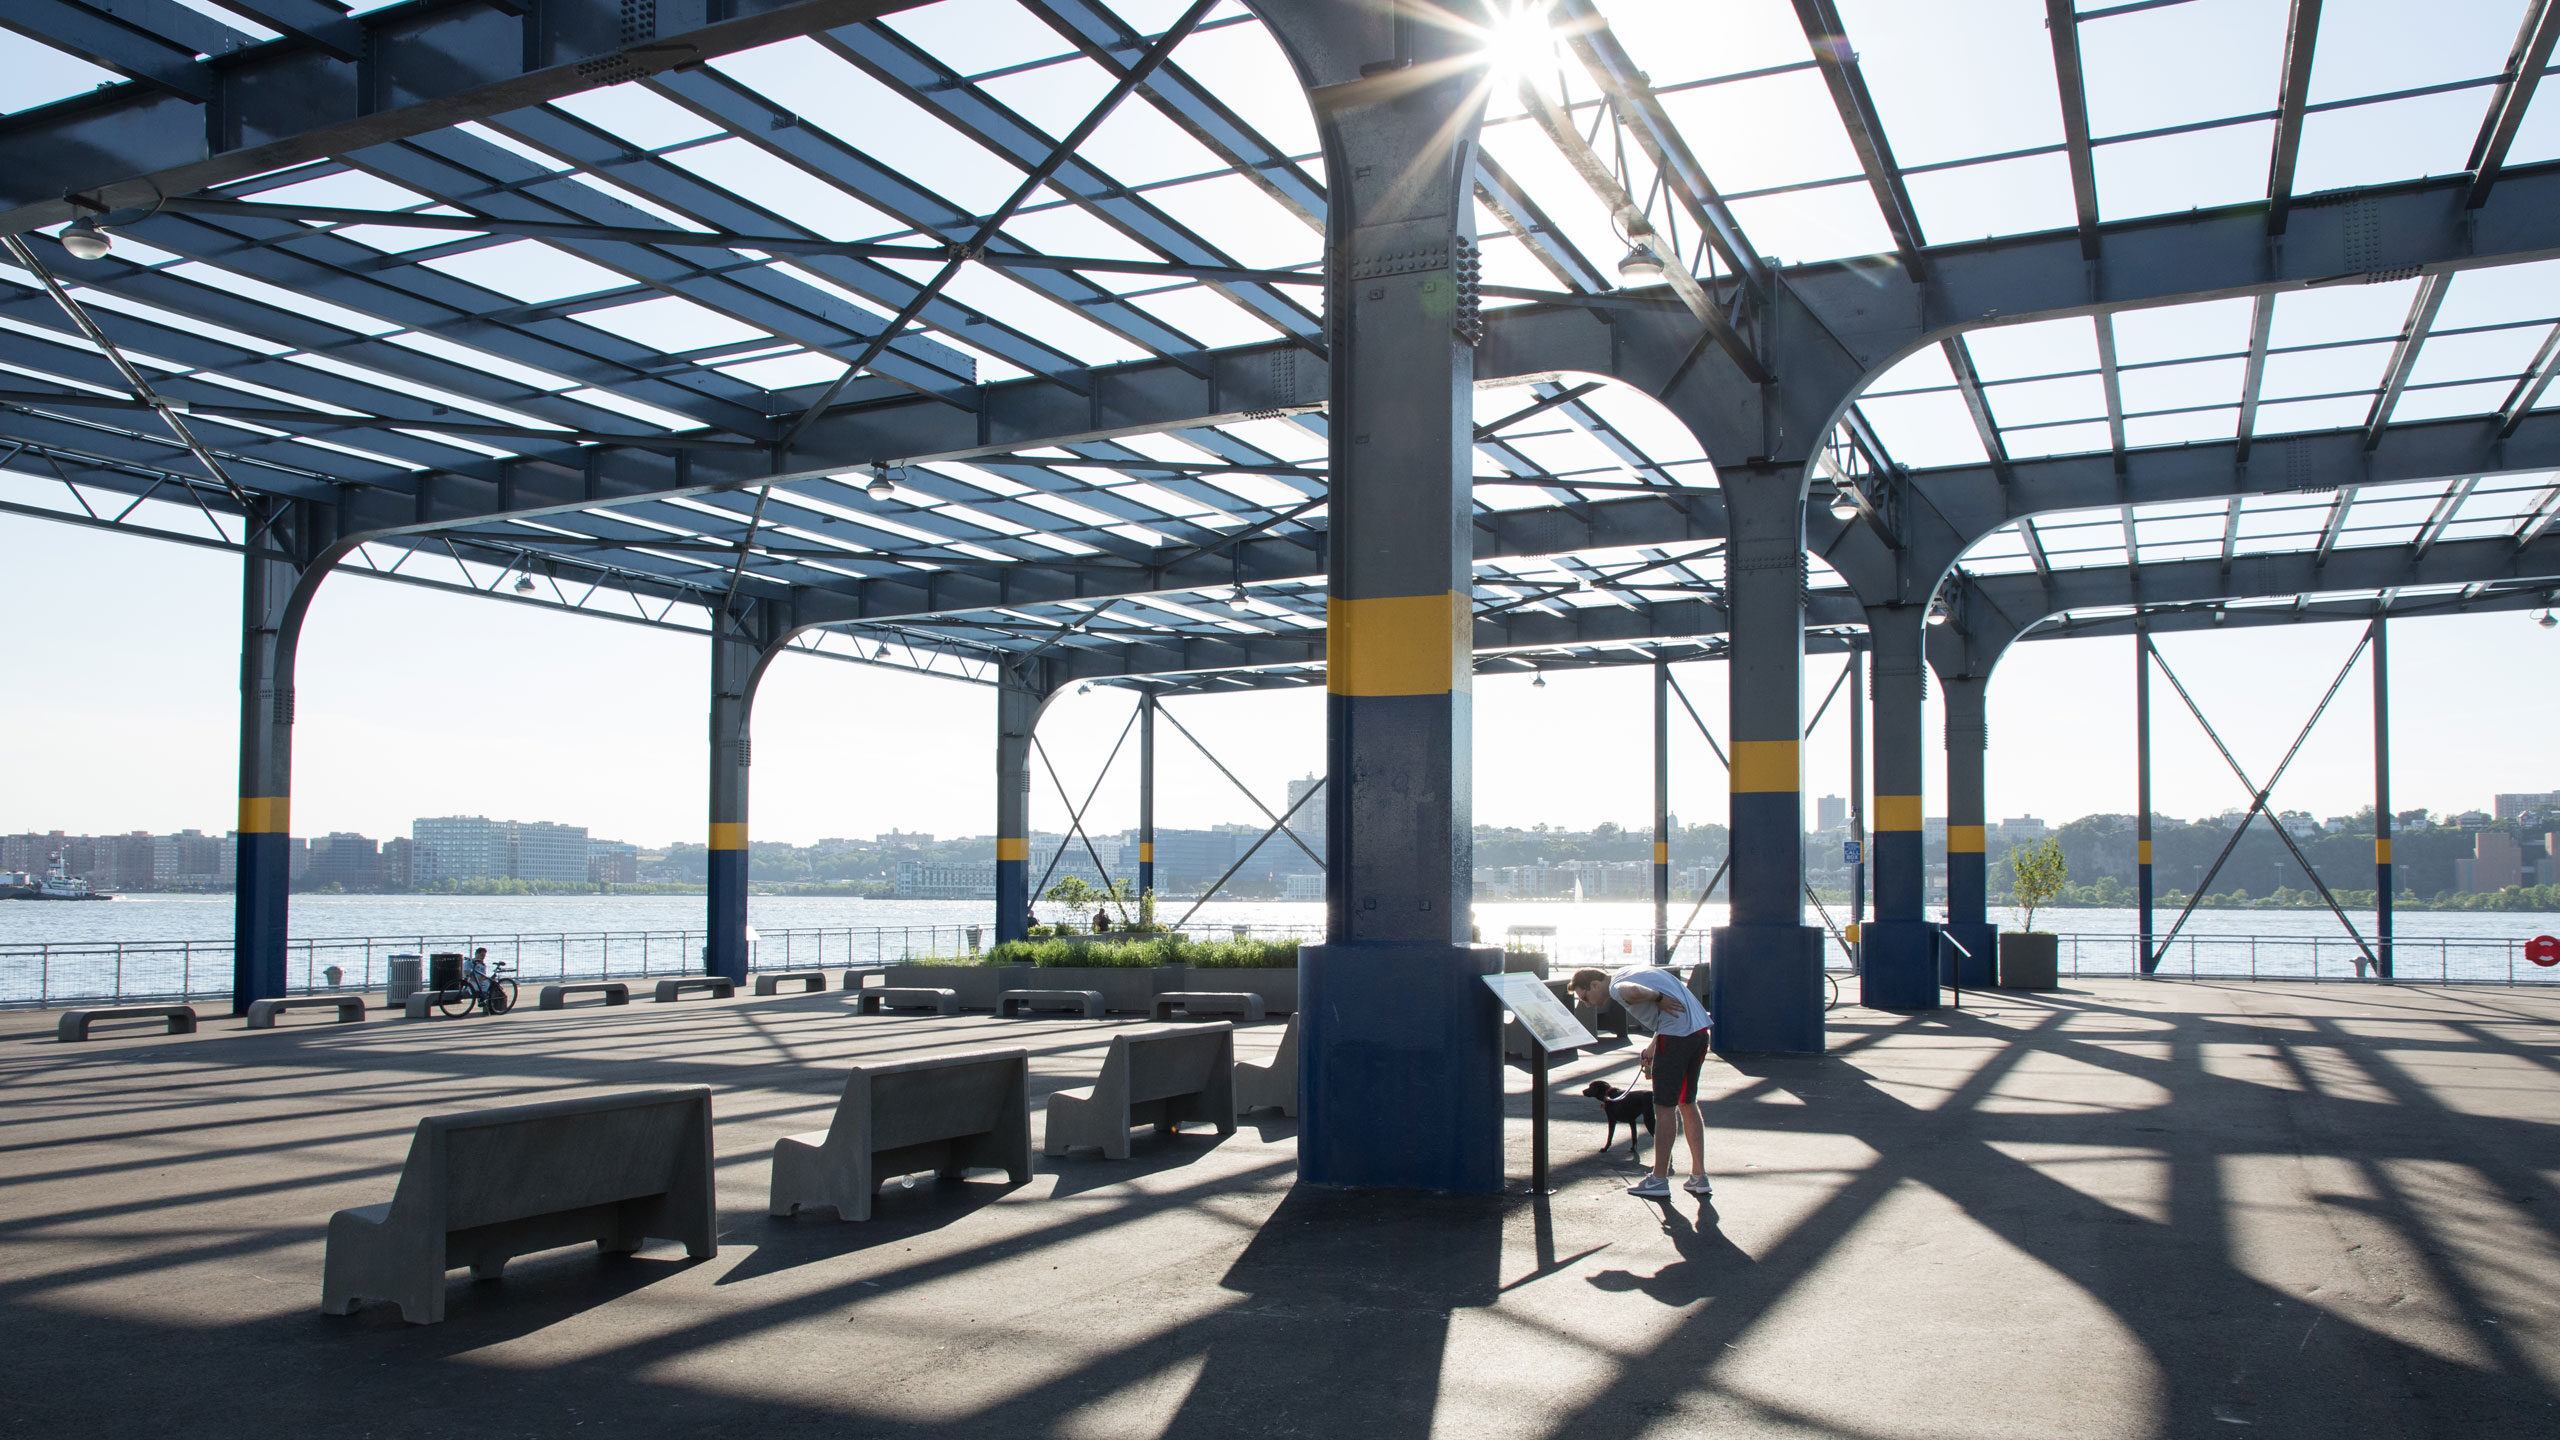 Man reads signage on the history of newly opened Pier 76 at Hudson River Park